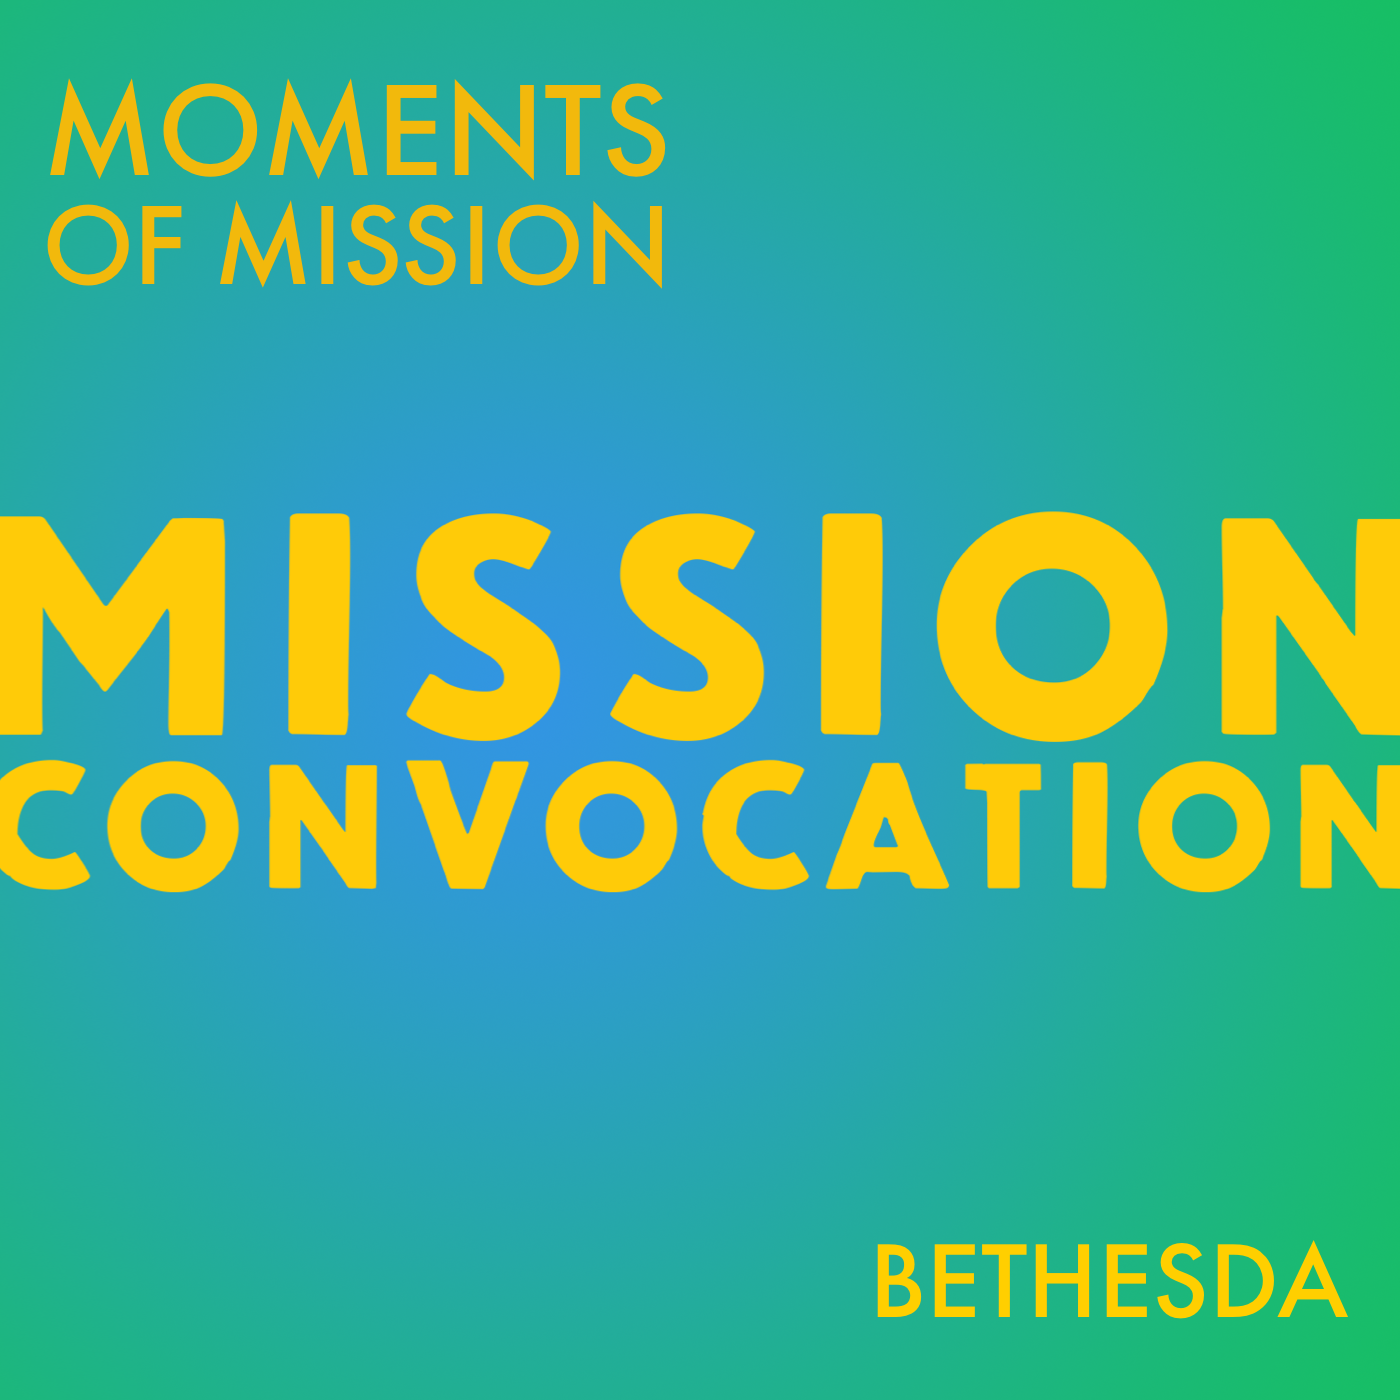 Moments of Mission – Bethesda